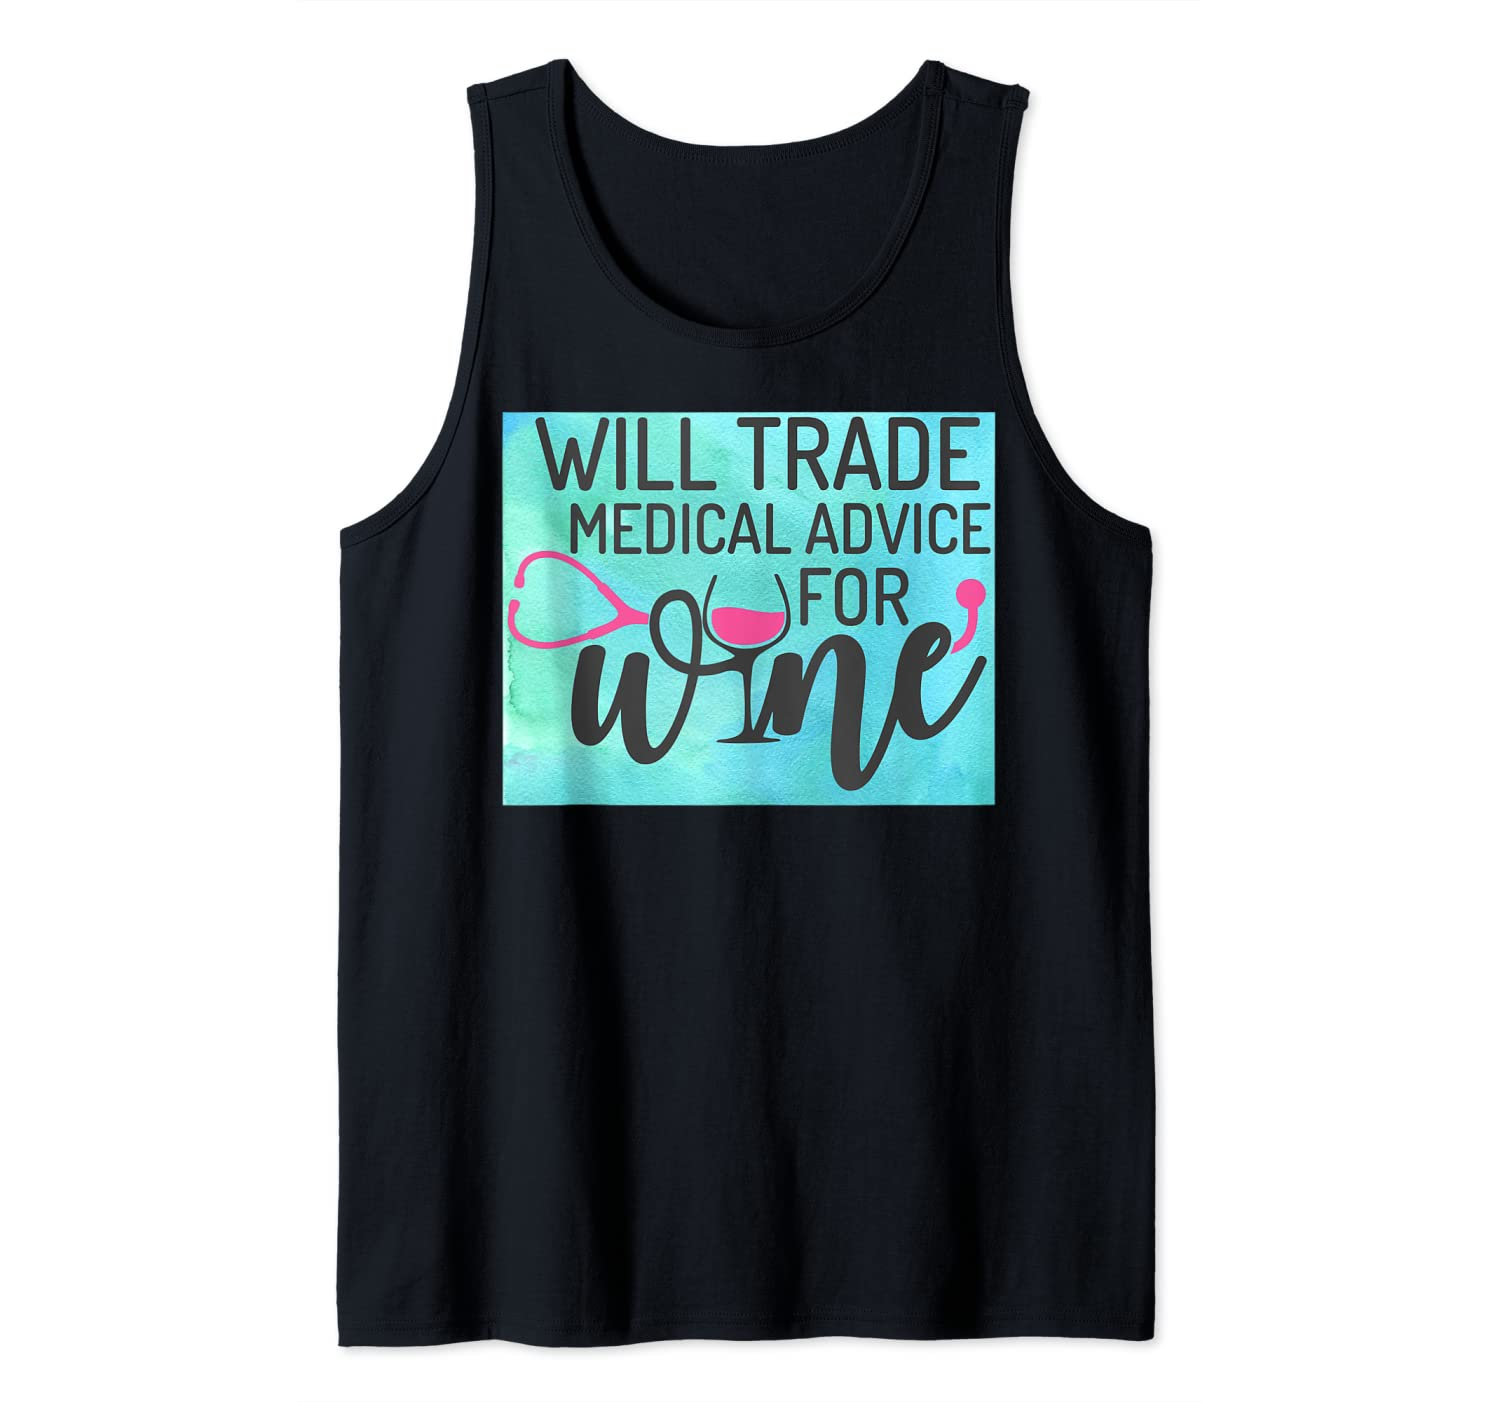 Funny watercolor Will trade Medical Advice for Wine Tank Top